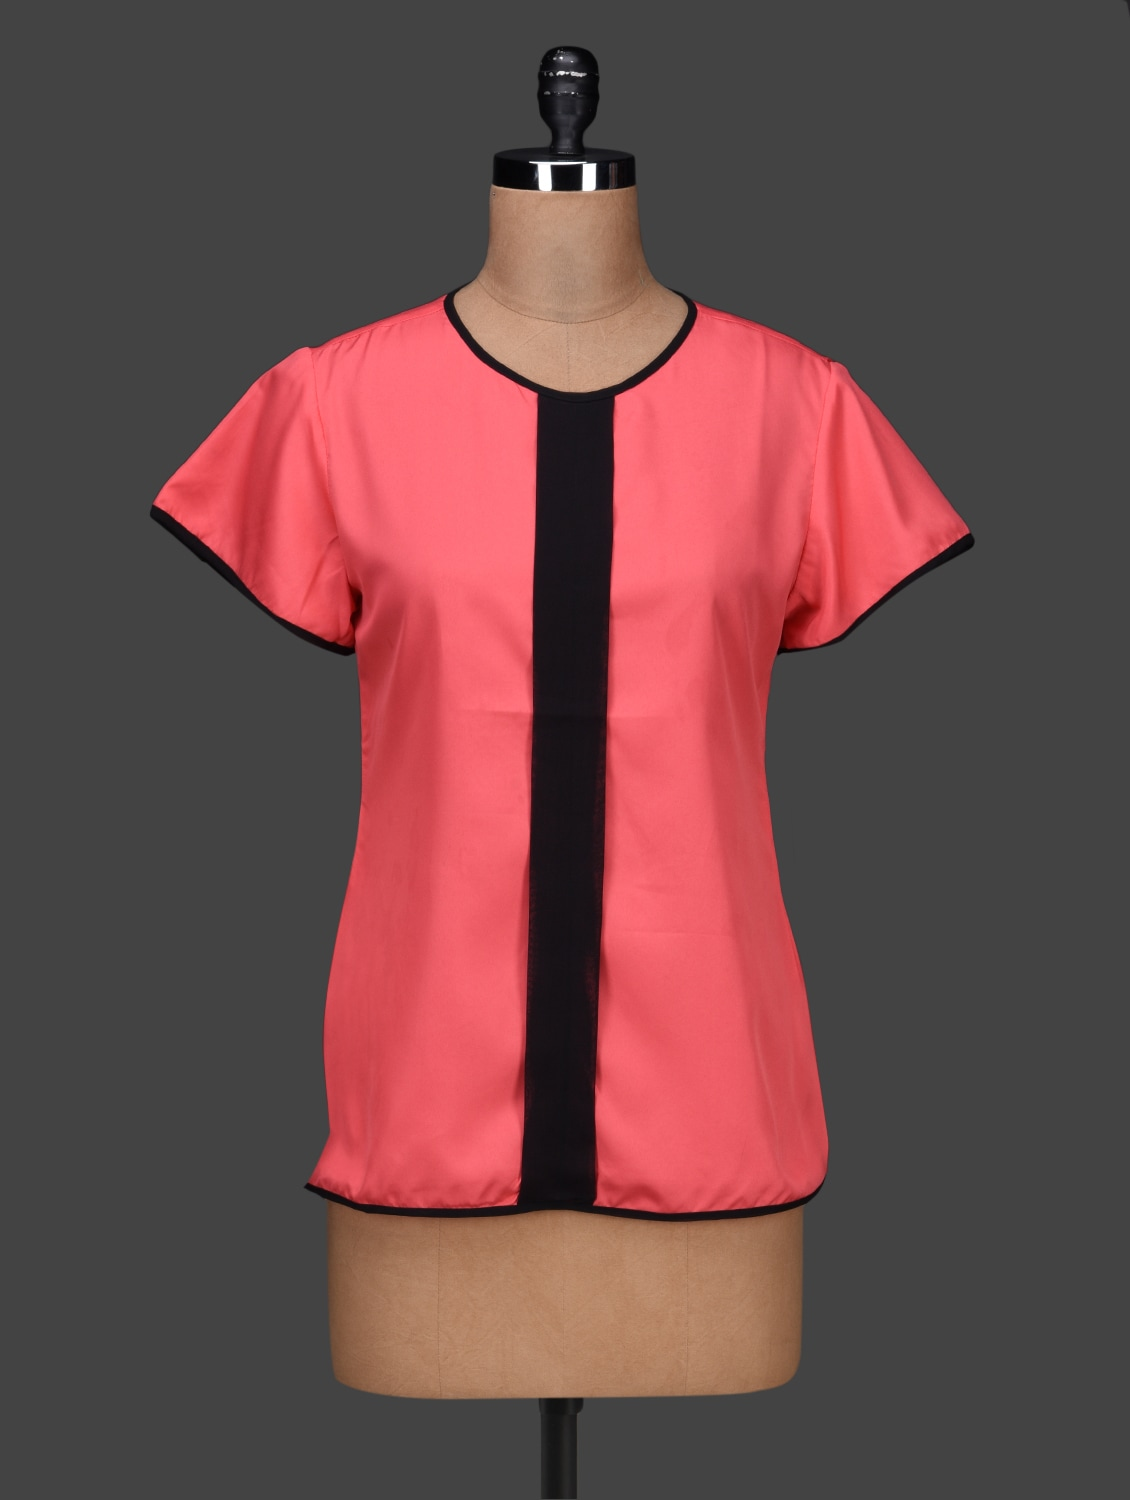 Round Neck Short Sleeves Pink Crepe Top - PANIT